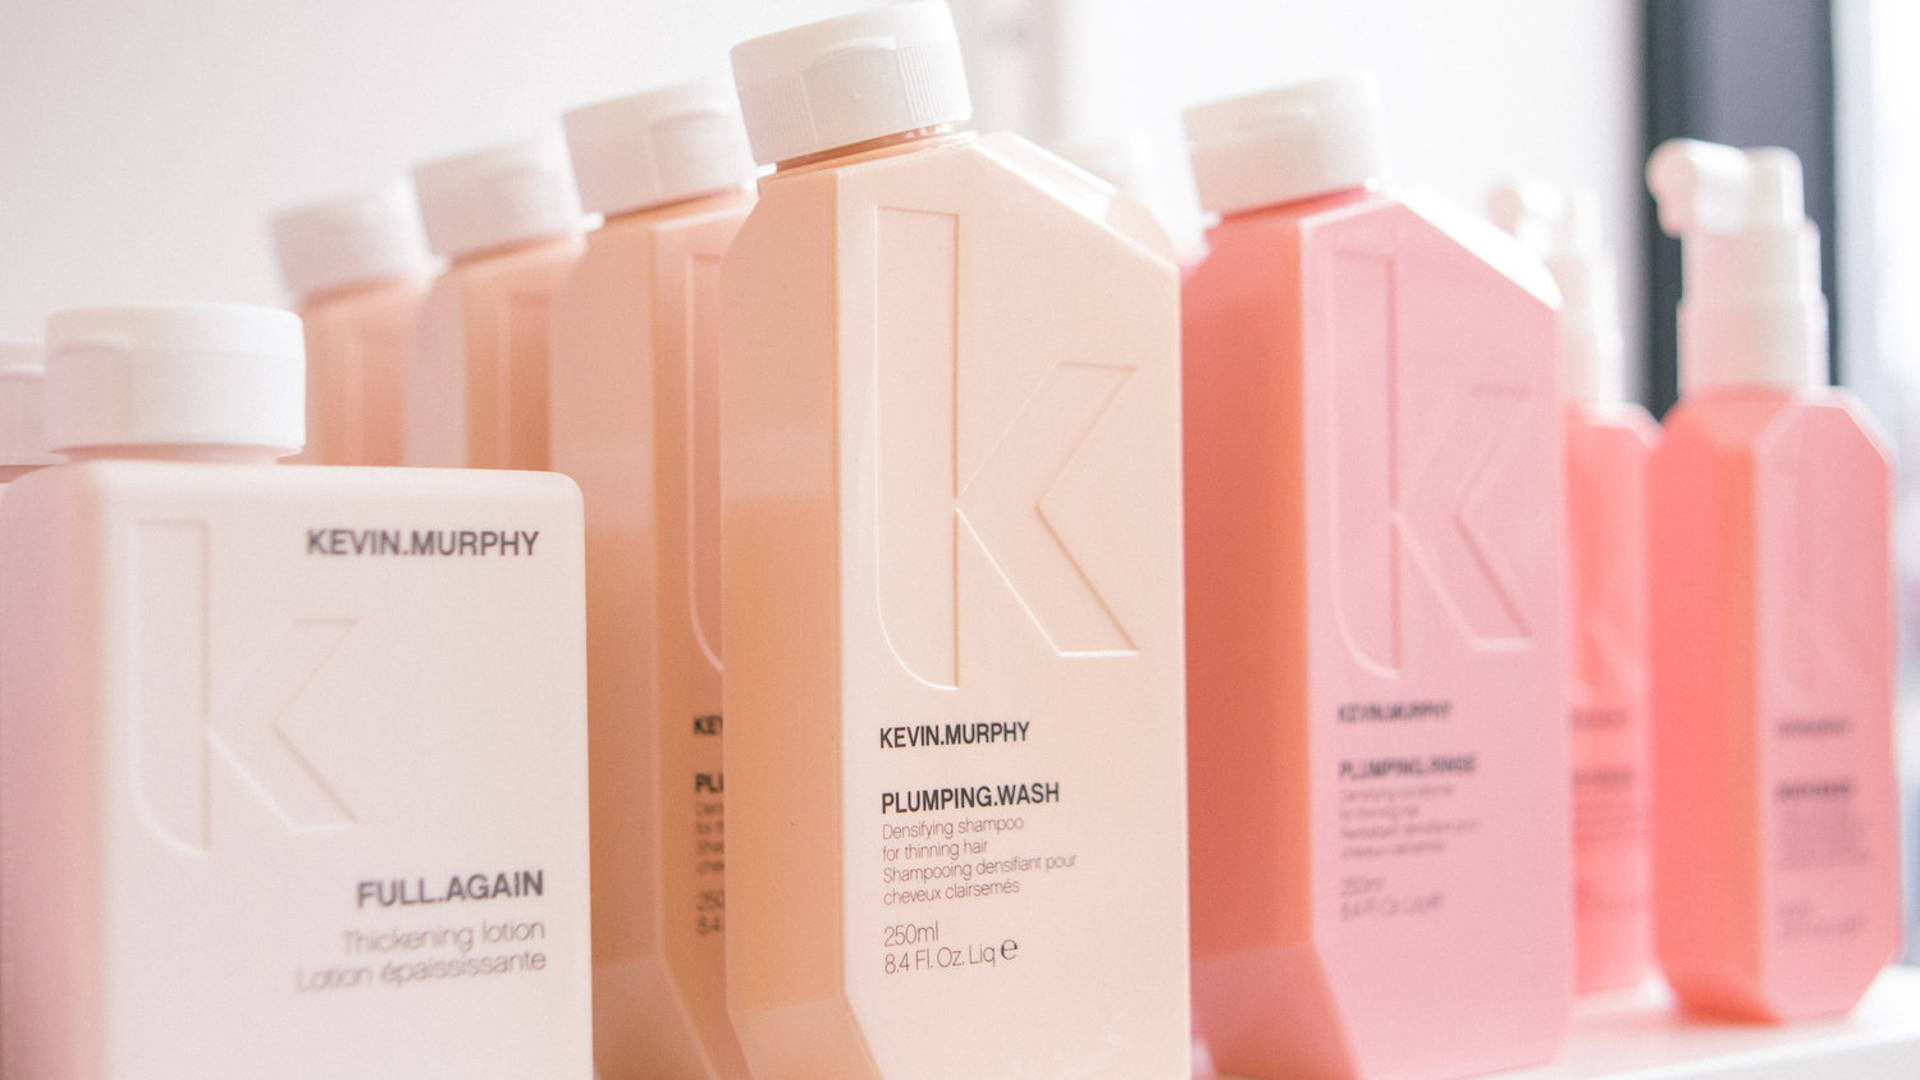 Beauty Brand KEVIN MURPHY To Make Packaging From 100